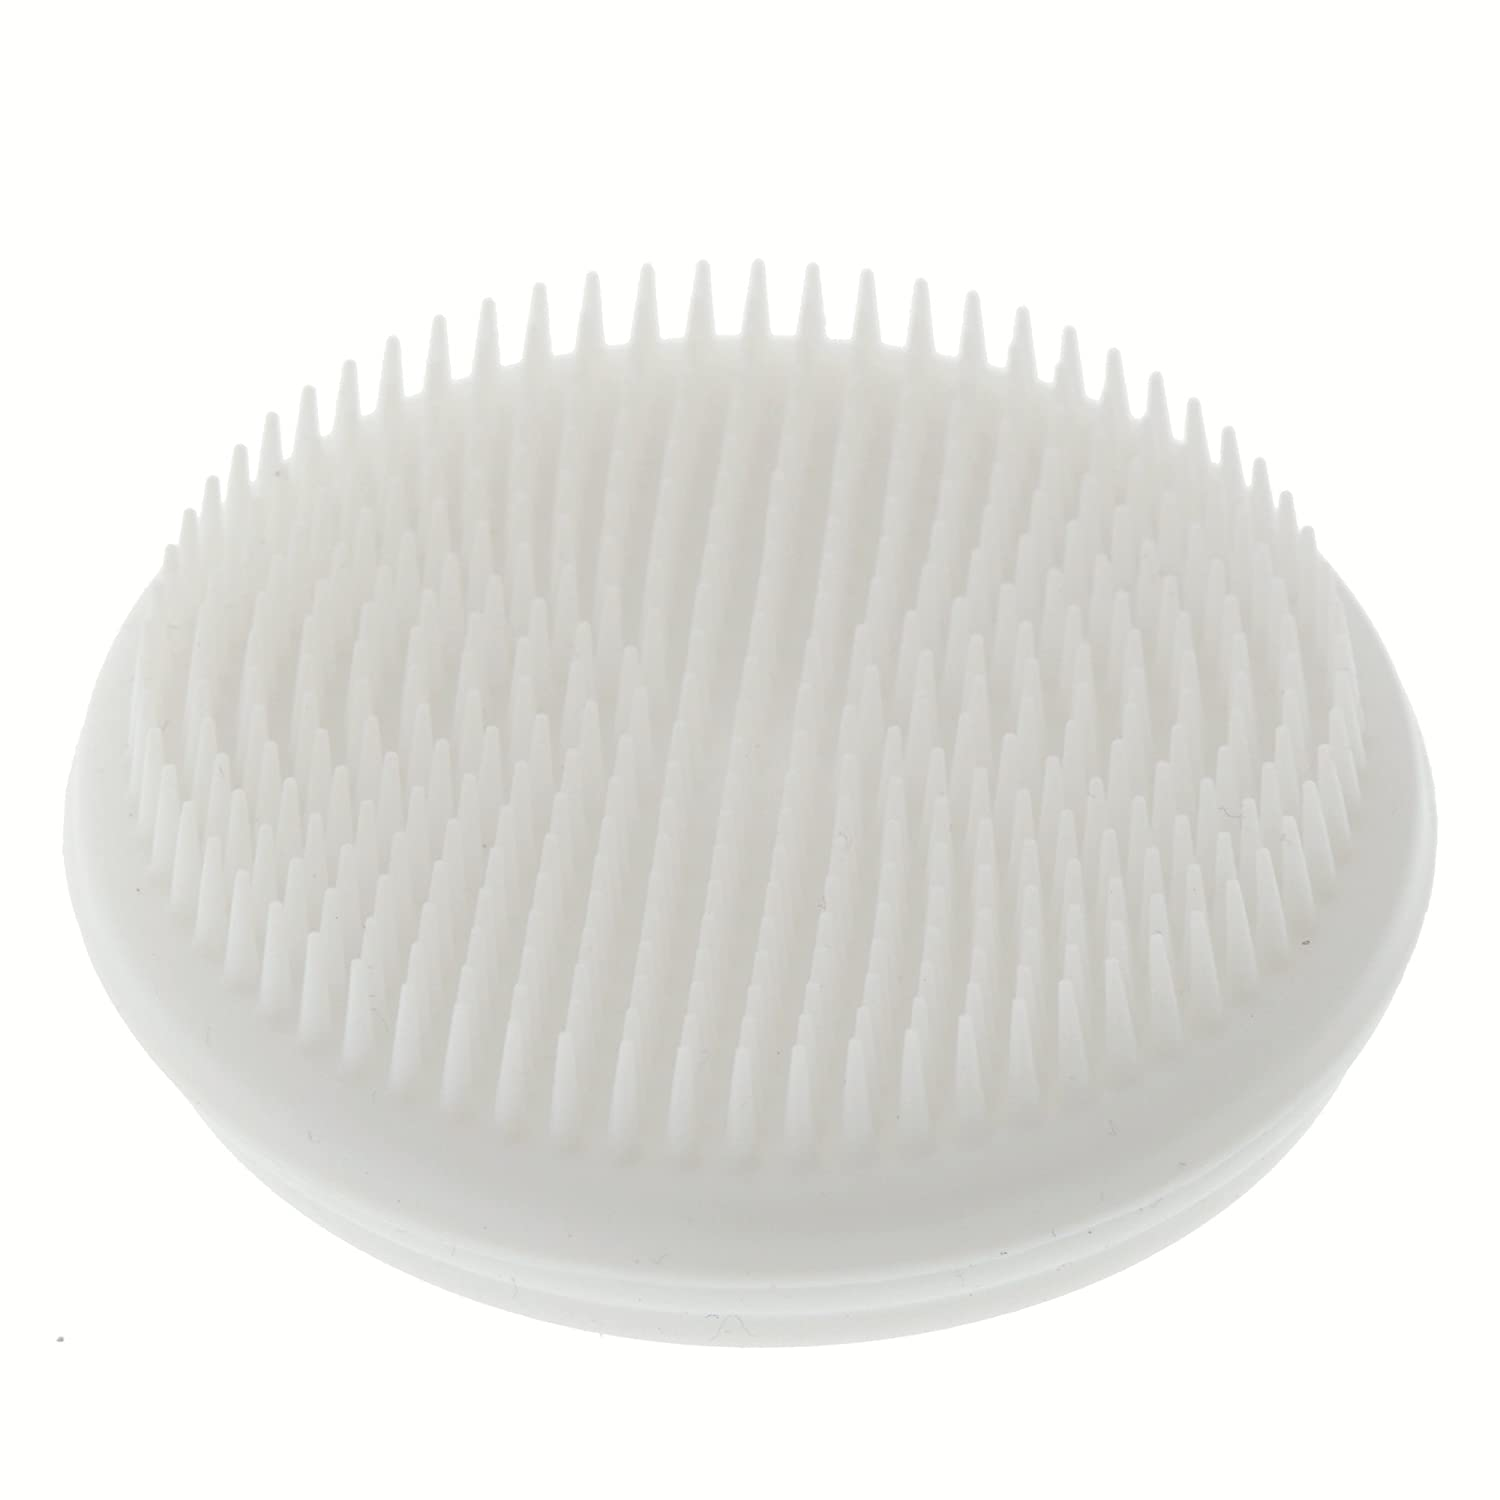 My Life My Shop Skin Spa Silicone Replacement Head Brush 1-Count MM34140-0001